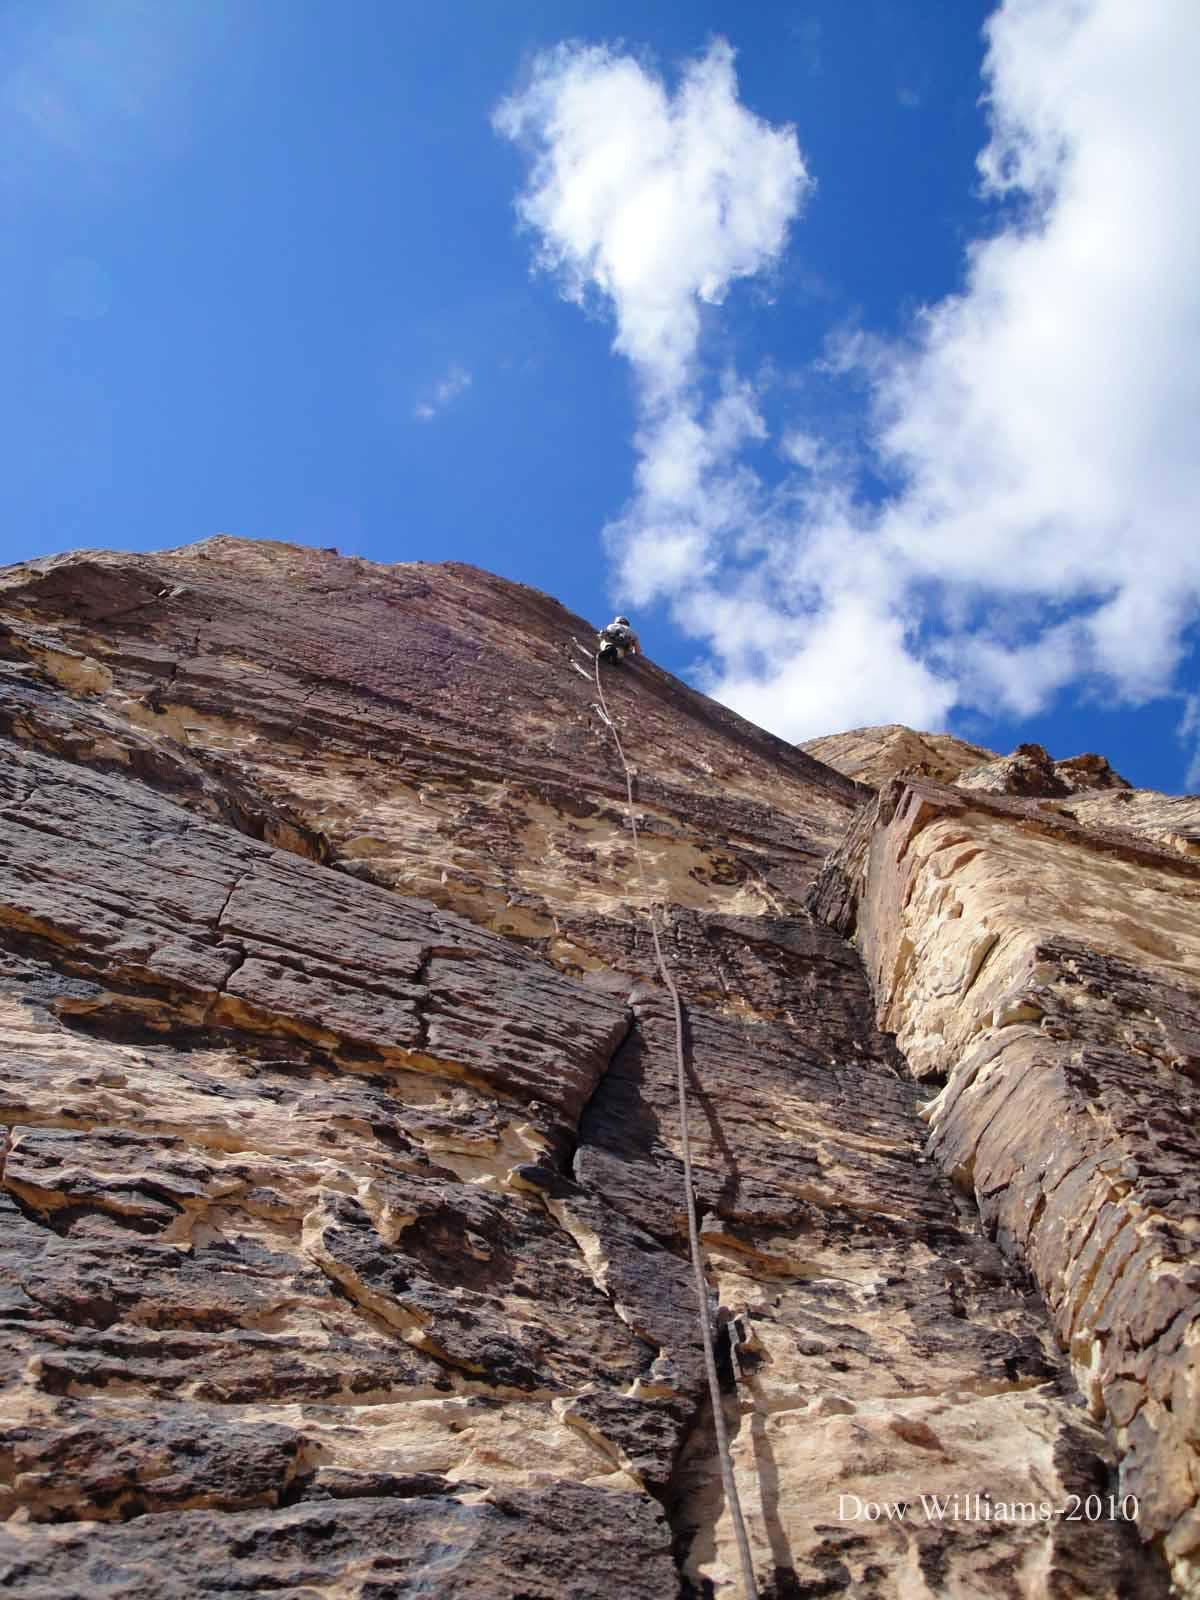 Mountain Beast, 5.11a, 8 Pitches